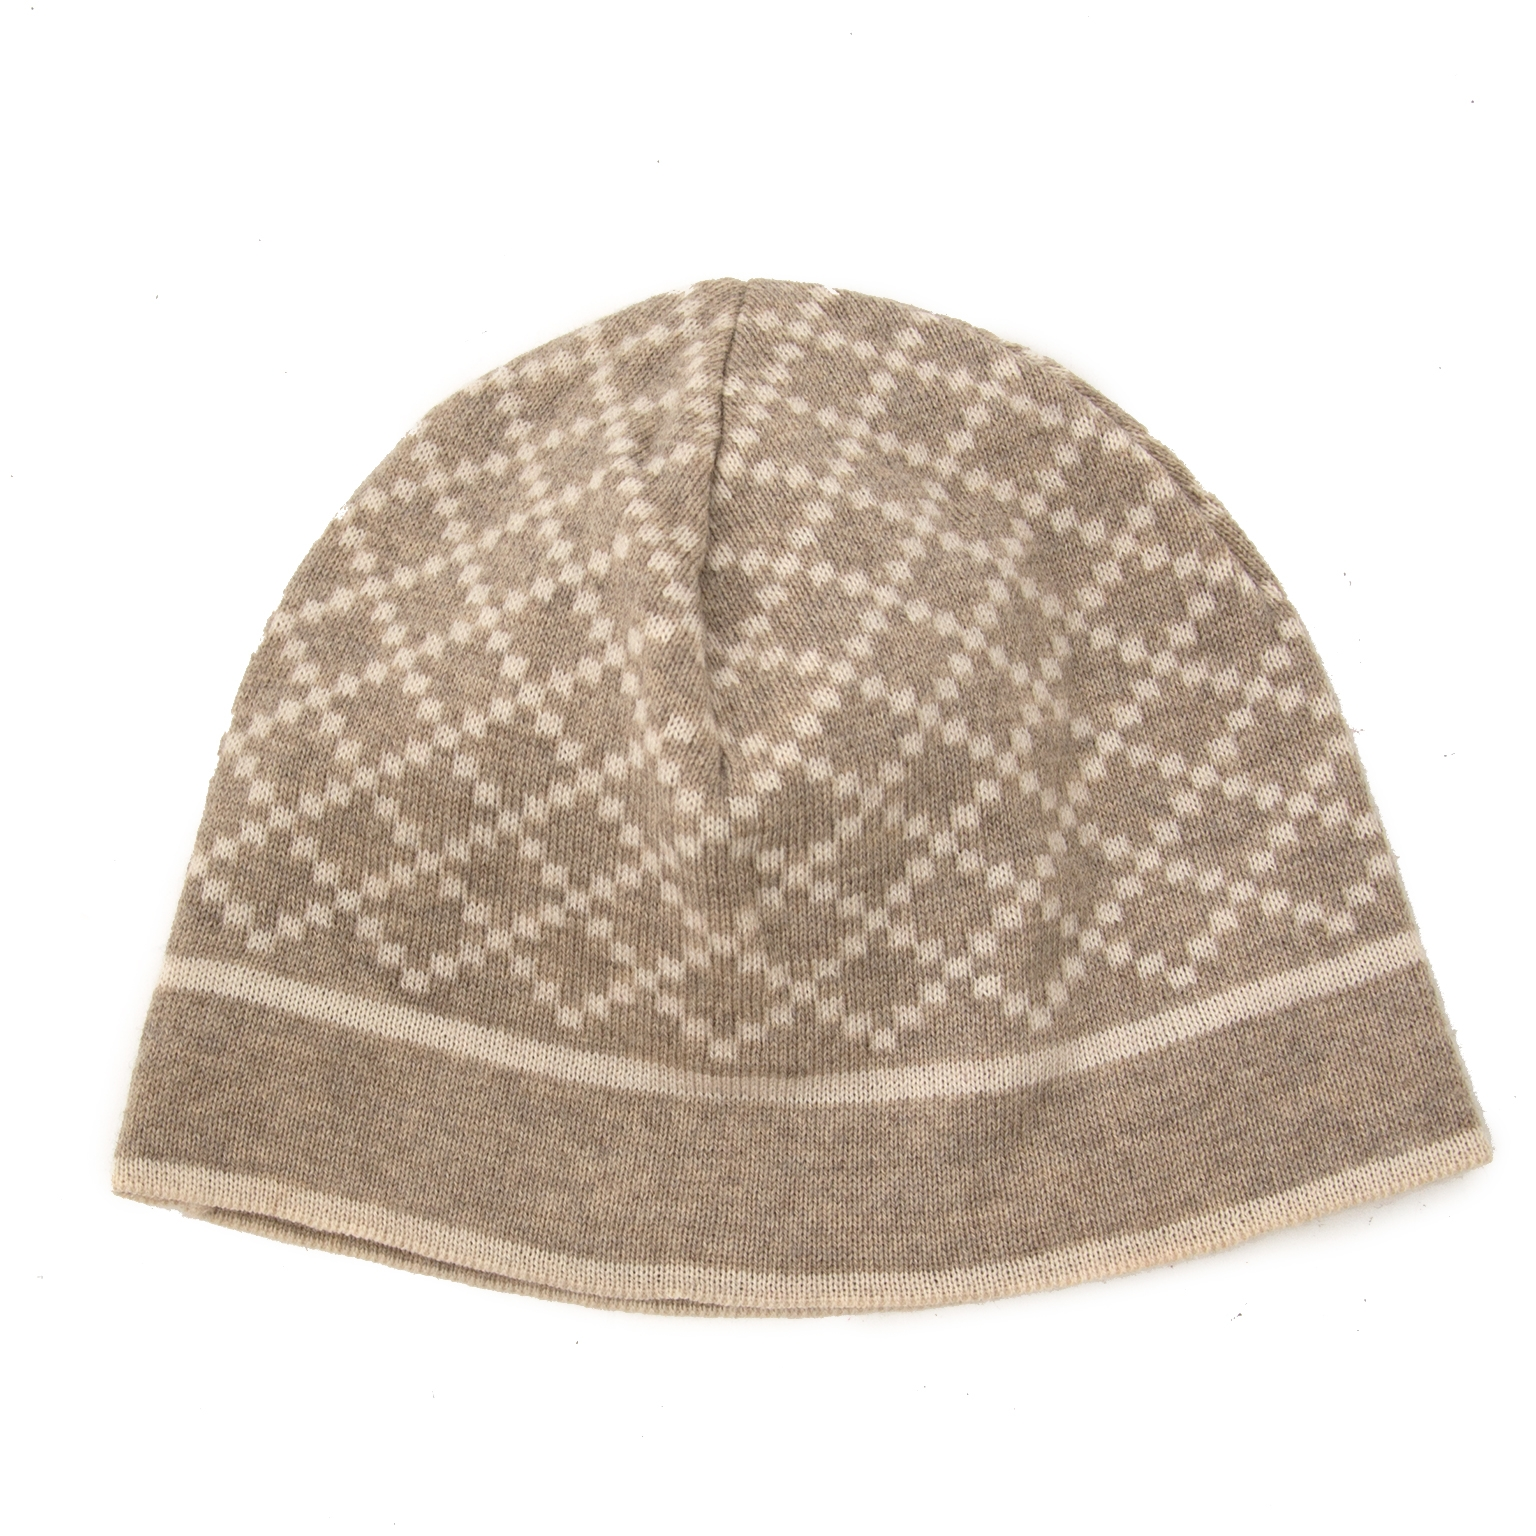 100% authentic Gucci Diamante-Pattern Wool Hat available online